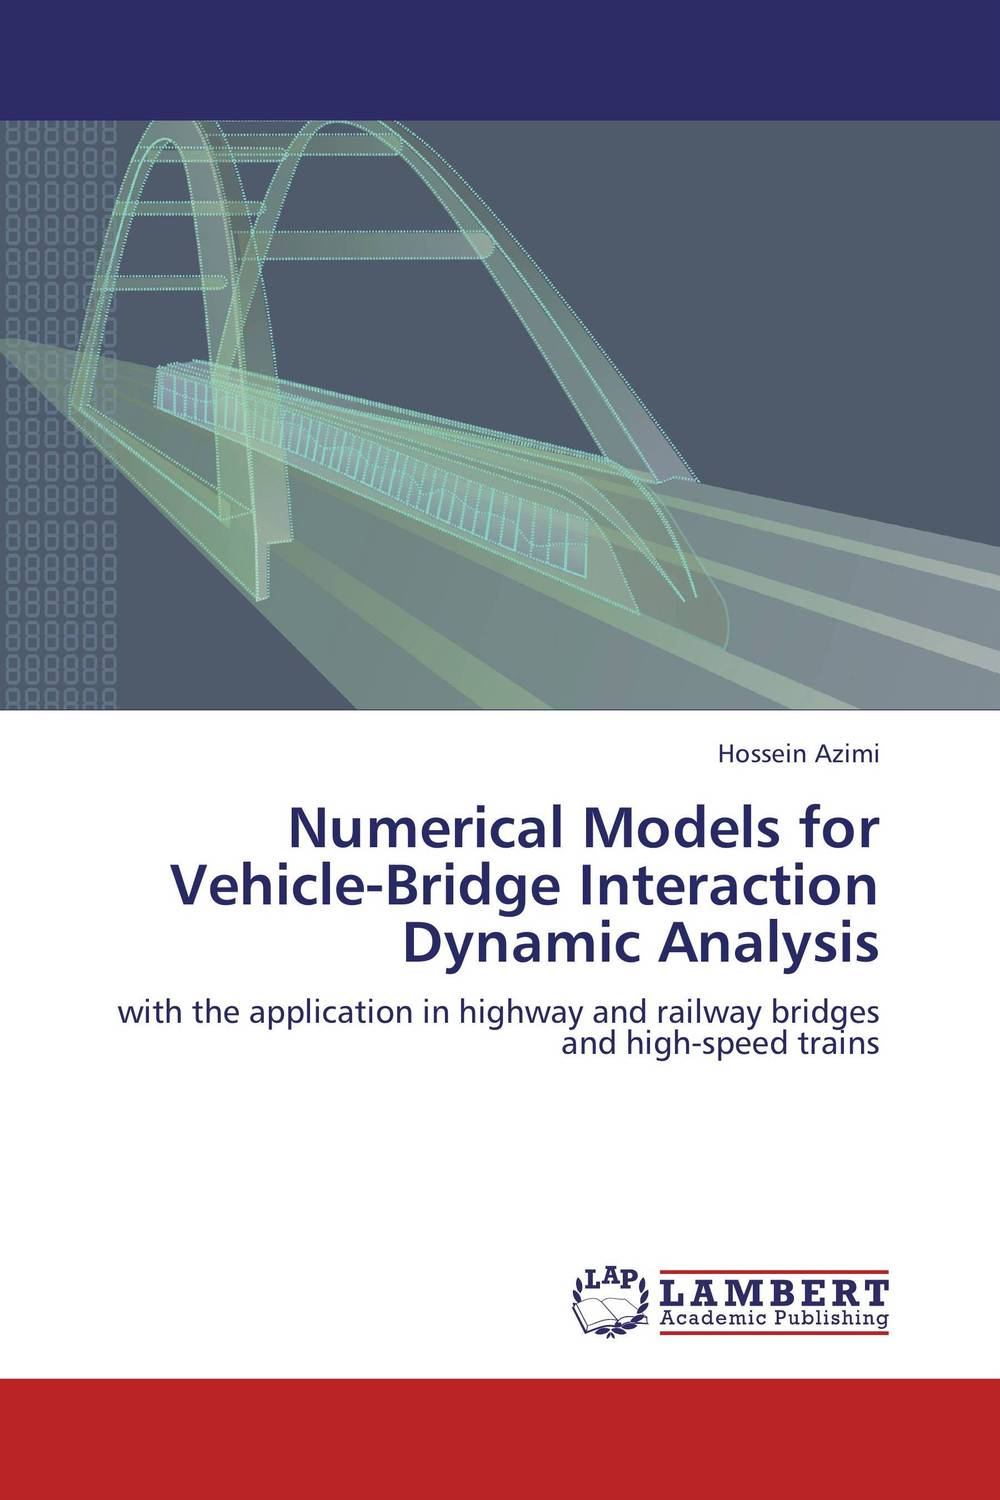 Numerical Models for Vehicle-Bridge Interaction Dynamic Analysis the new hot promotions 1 30 military vehicles dongfeng 11a missile launch vehicle model alloy office decoration